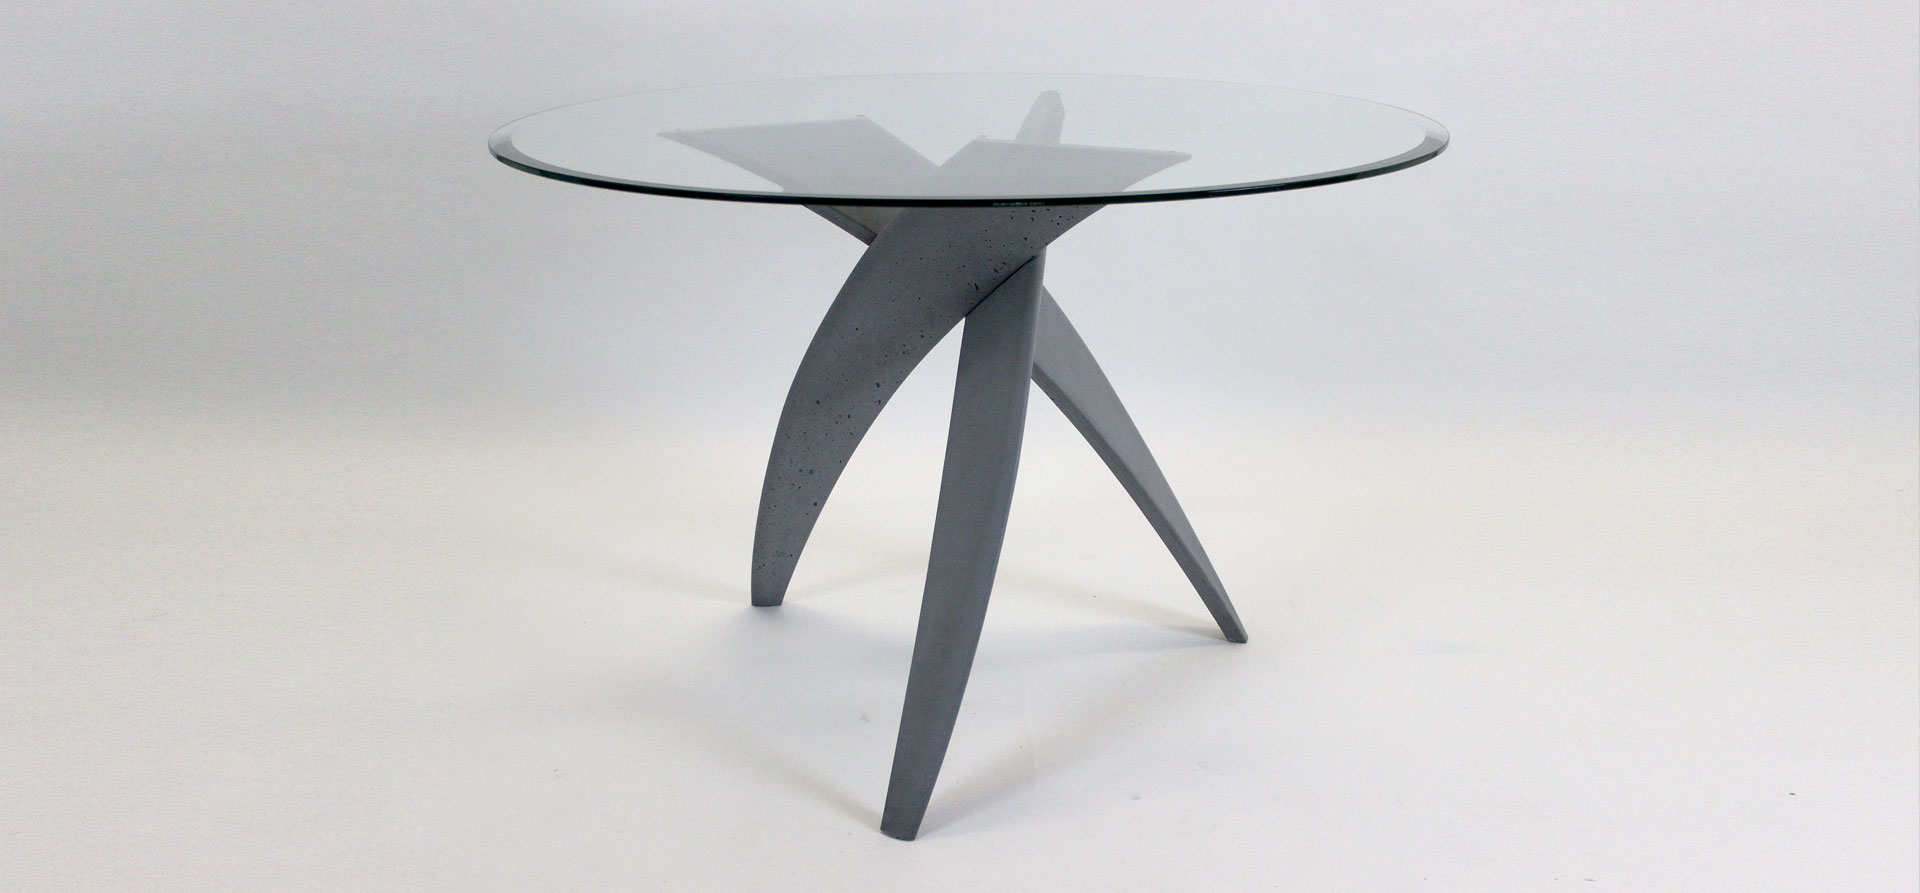 Commissions: Ductal Trifoil table, from £1299